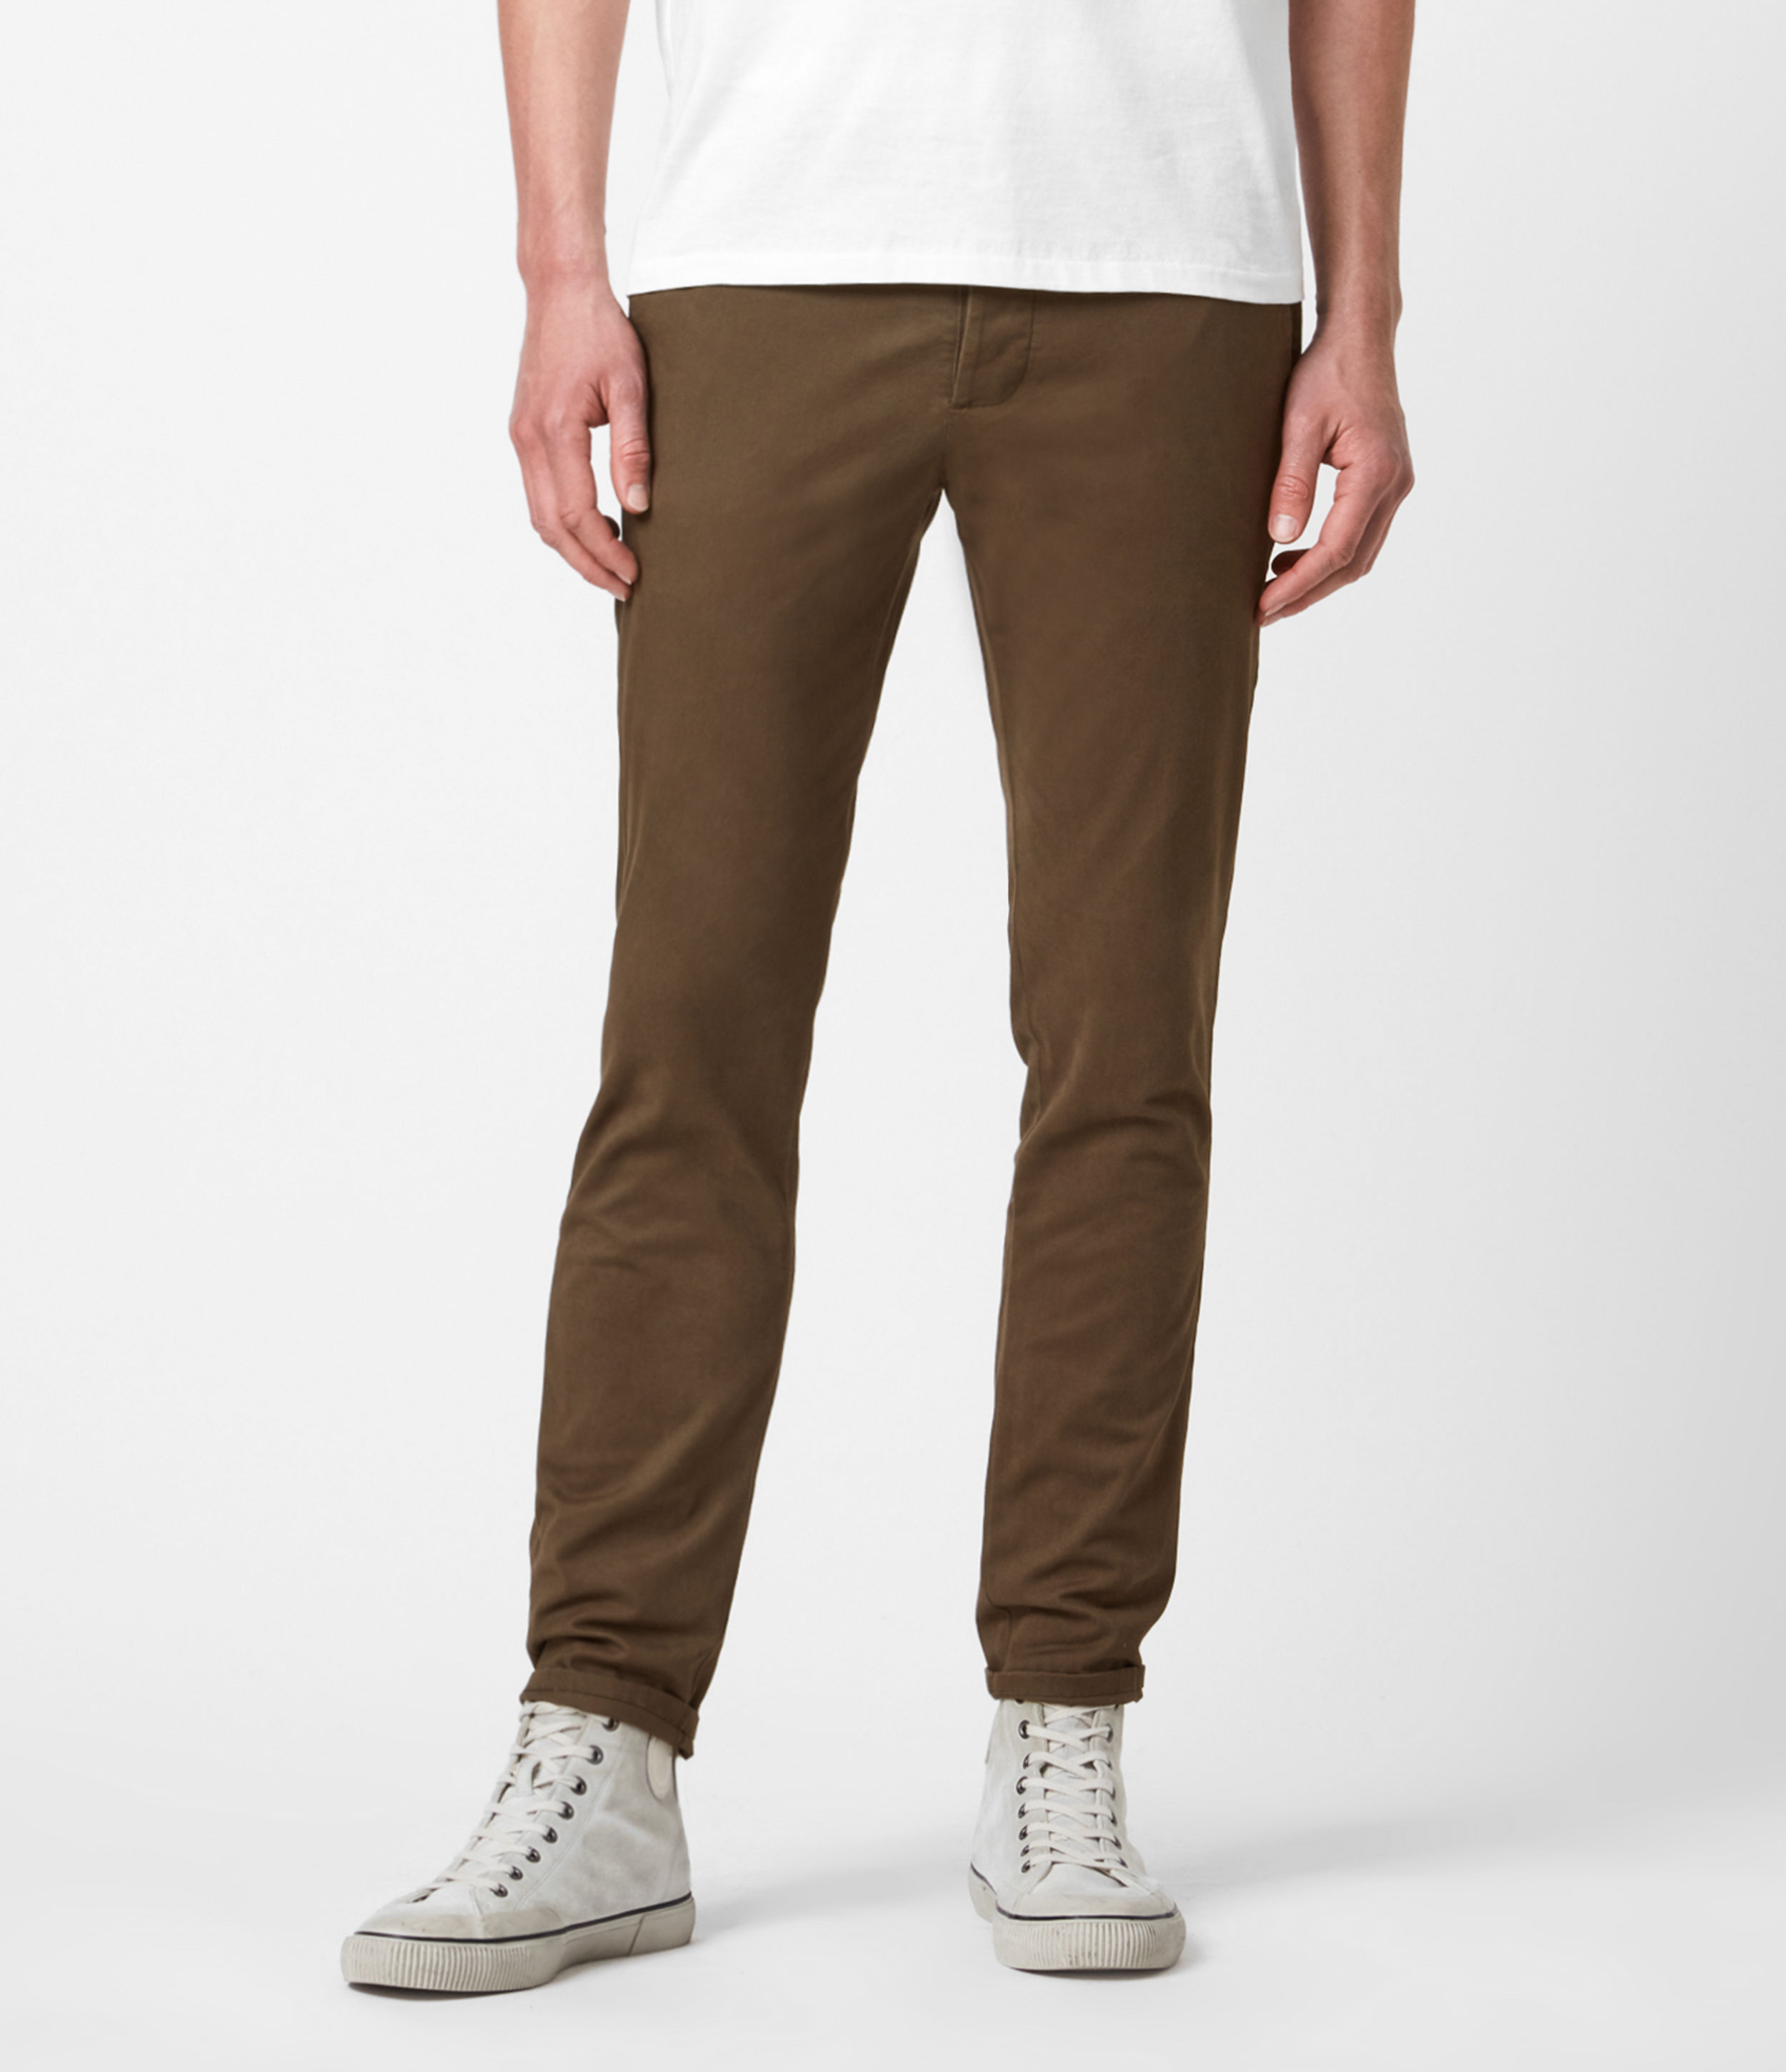 AllSaints Men's Cotton Lightweight Park Skinny Chinos, Brown, Size: 28